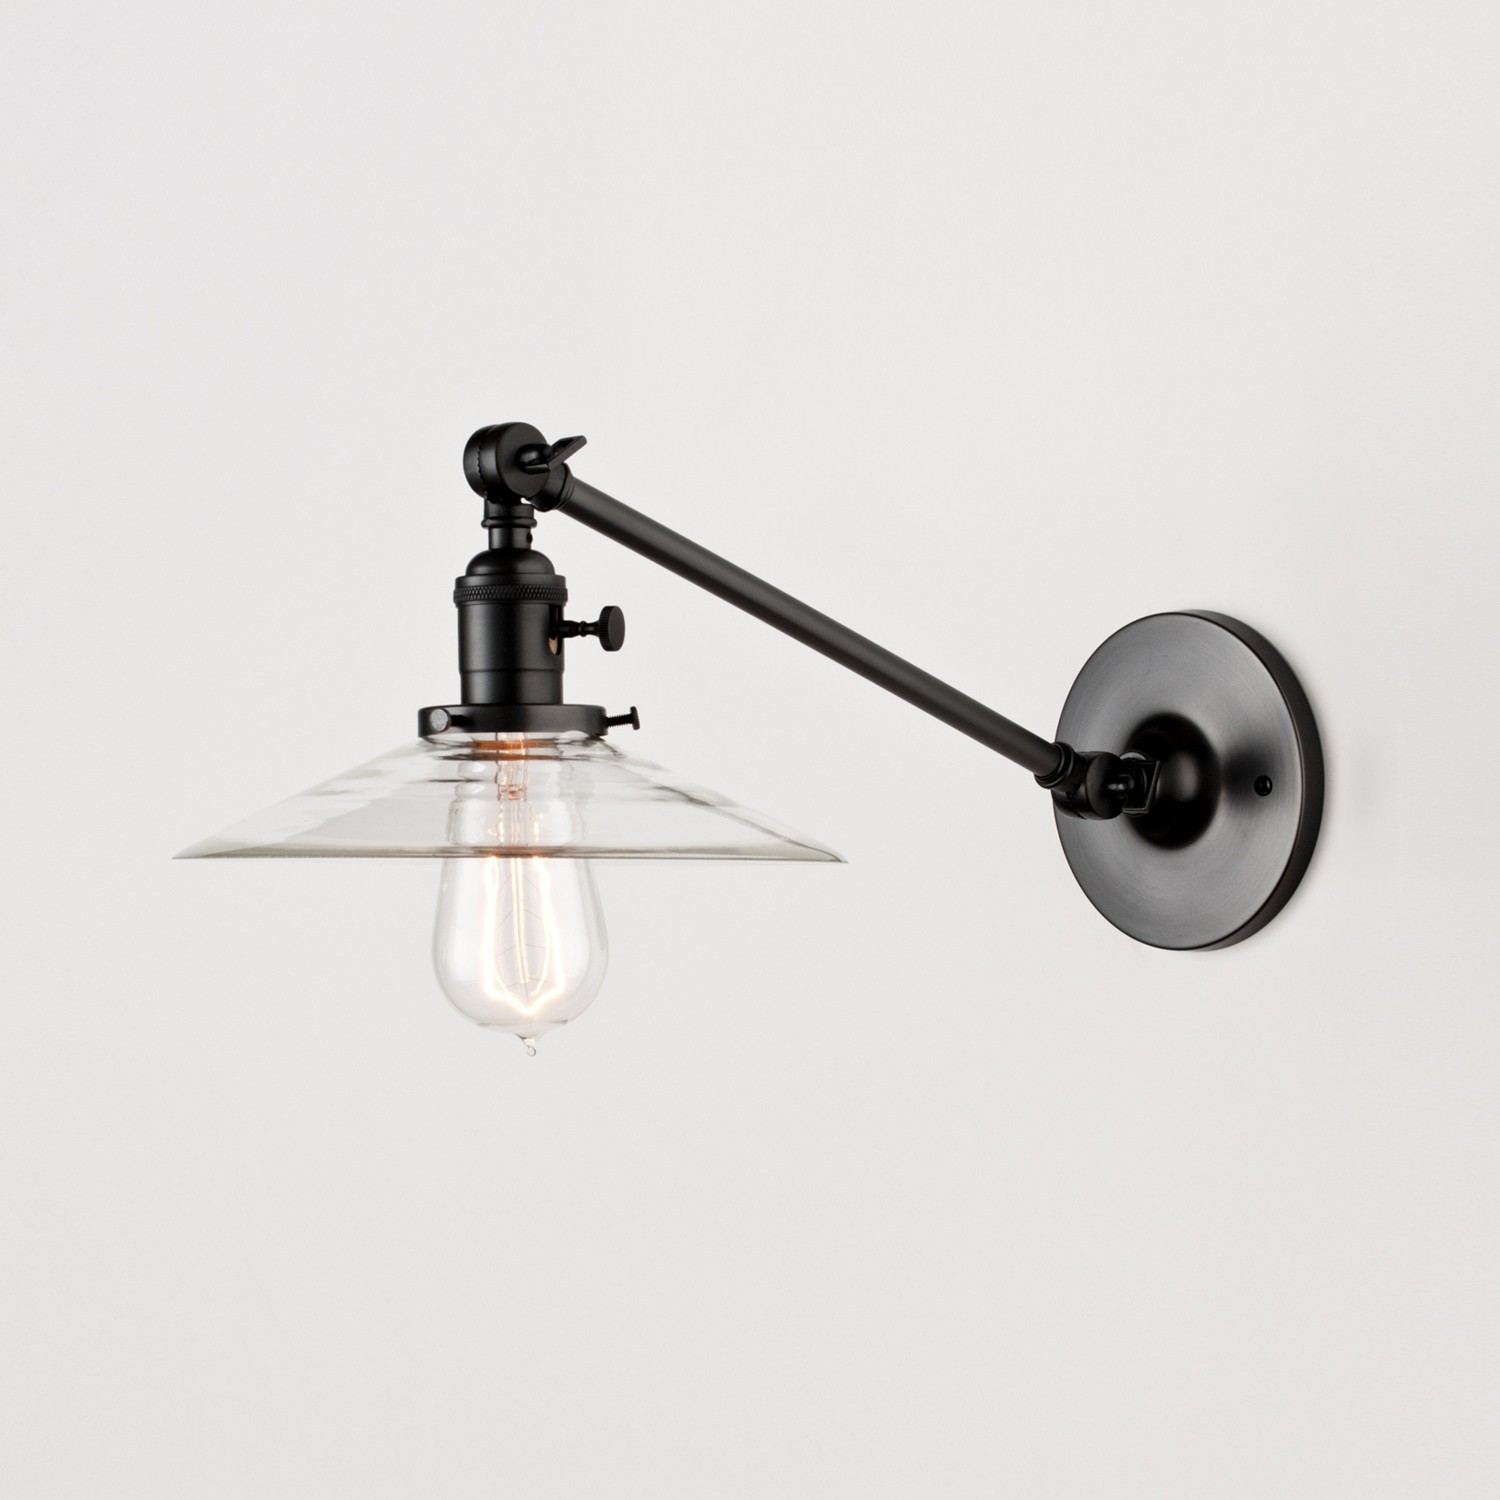 Design Industrial Light Fixtures lets stay industrial lighting fixtures fixtures